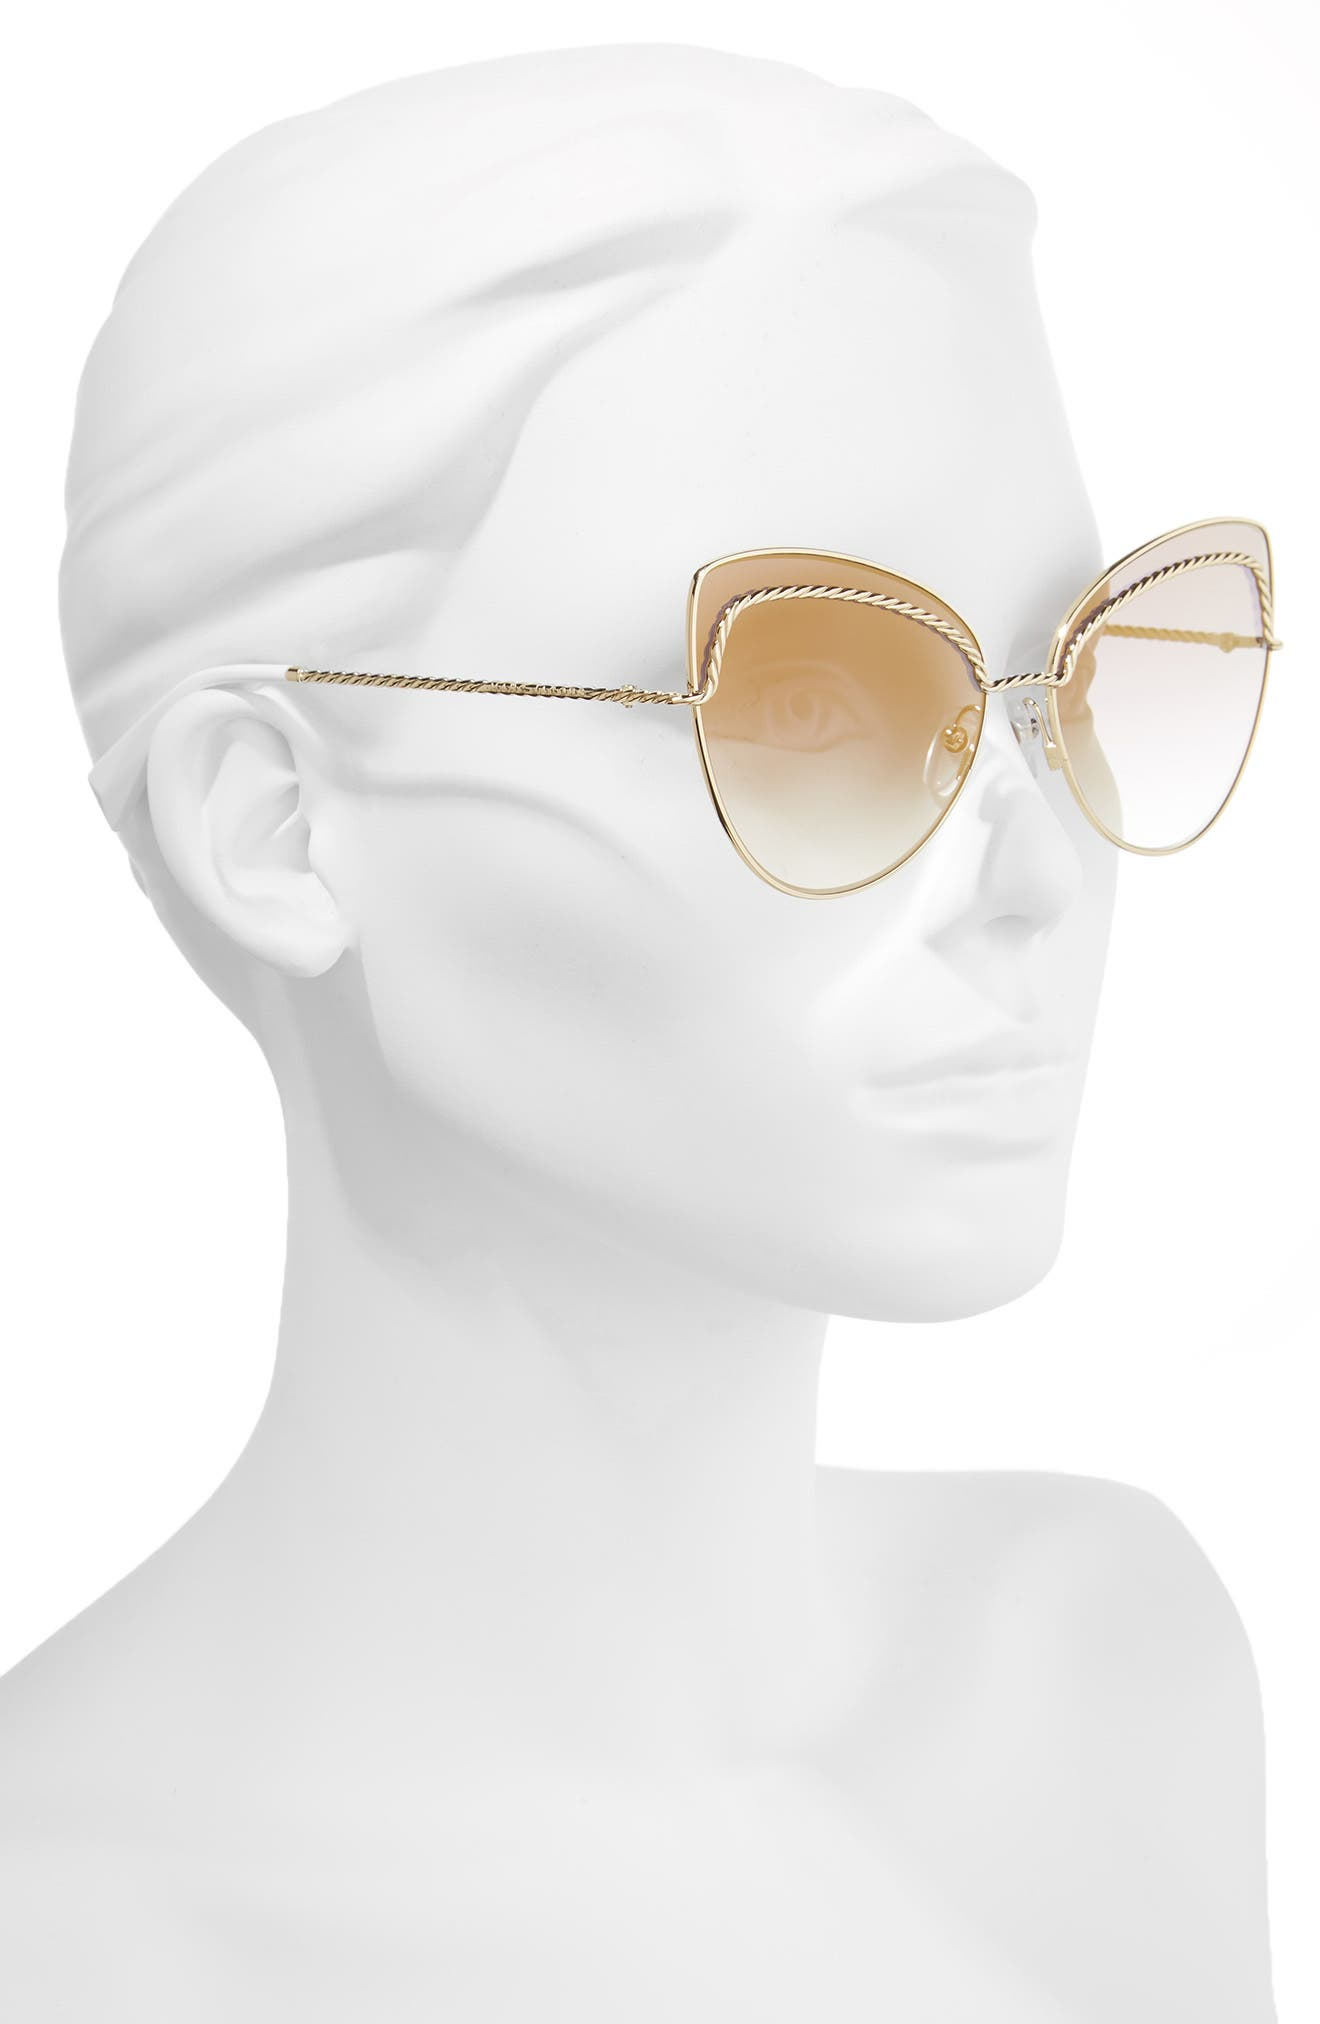 61mm Butterfly Sunglasses,                             Alternate thumbnail 4, color,